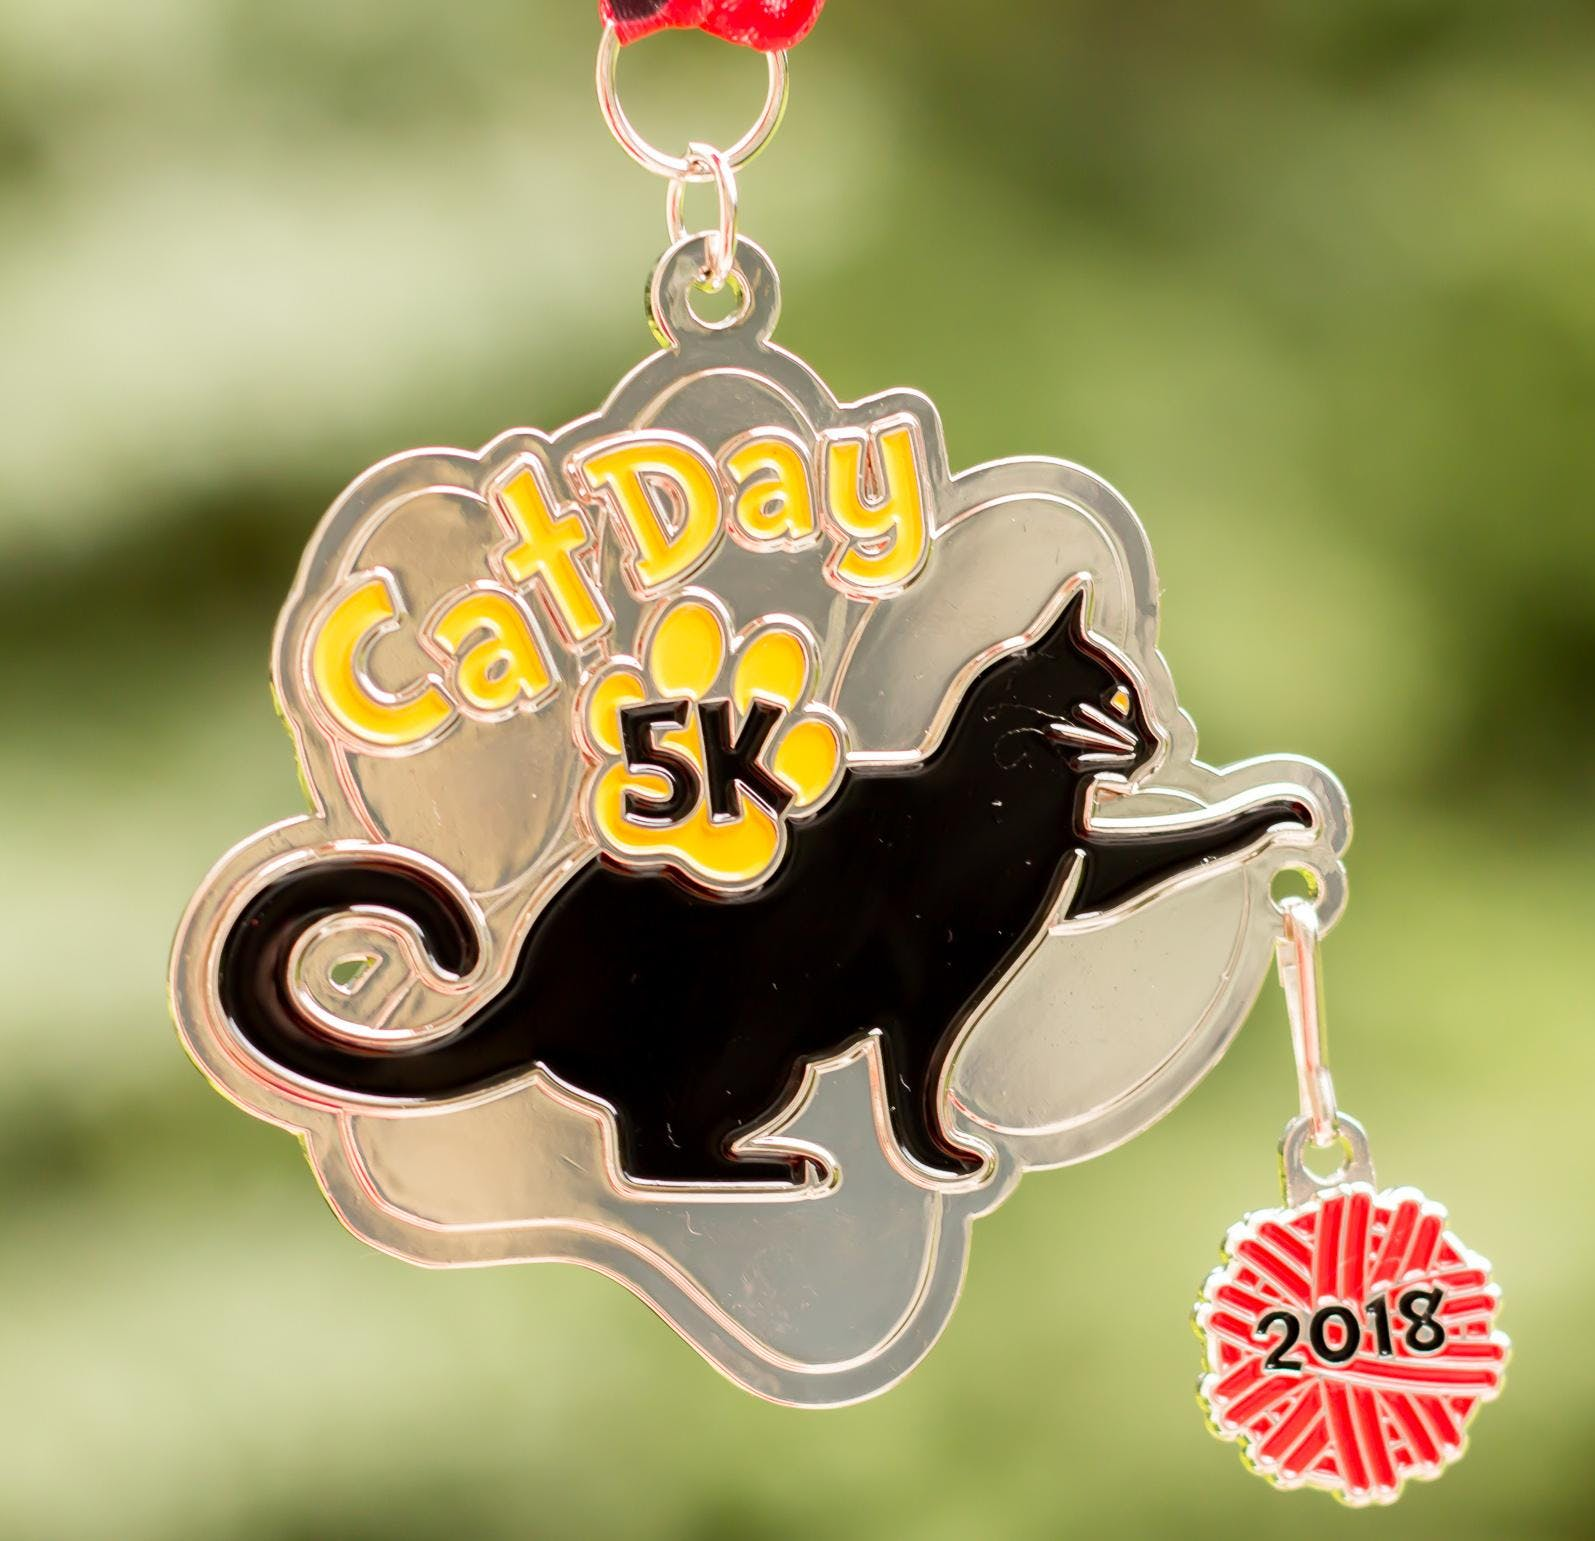 Now Only $10 Cat Day 5K & 10K - Phoenix